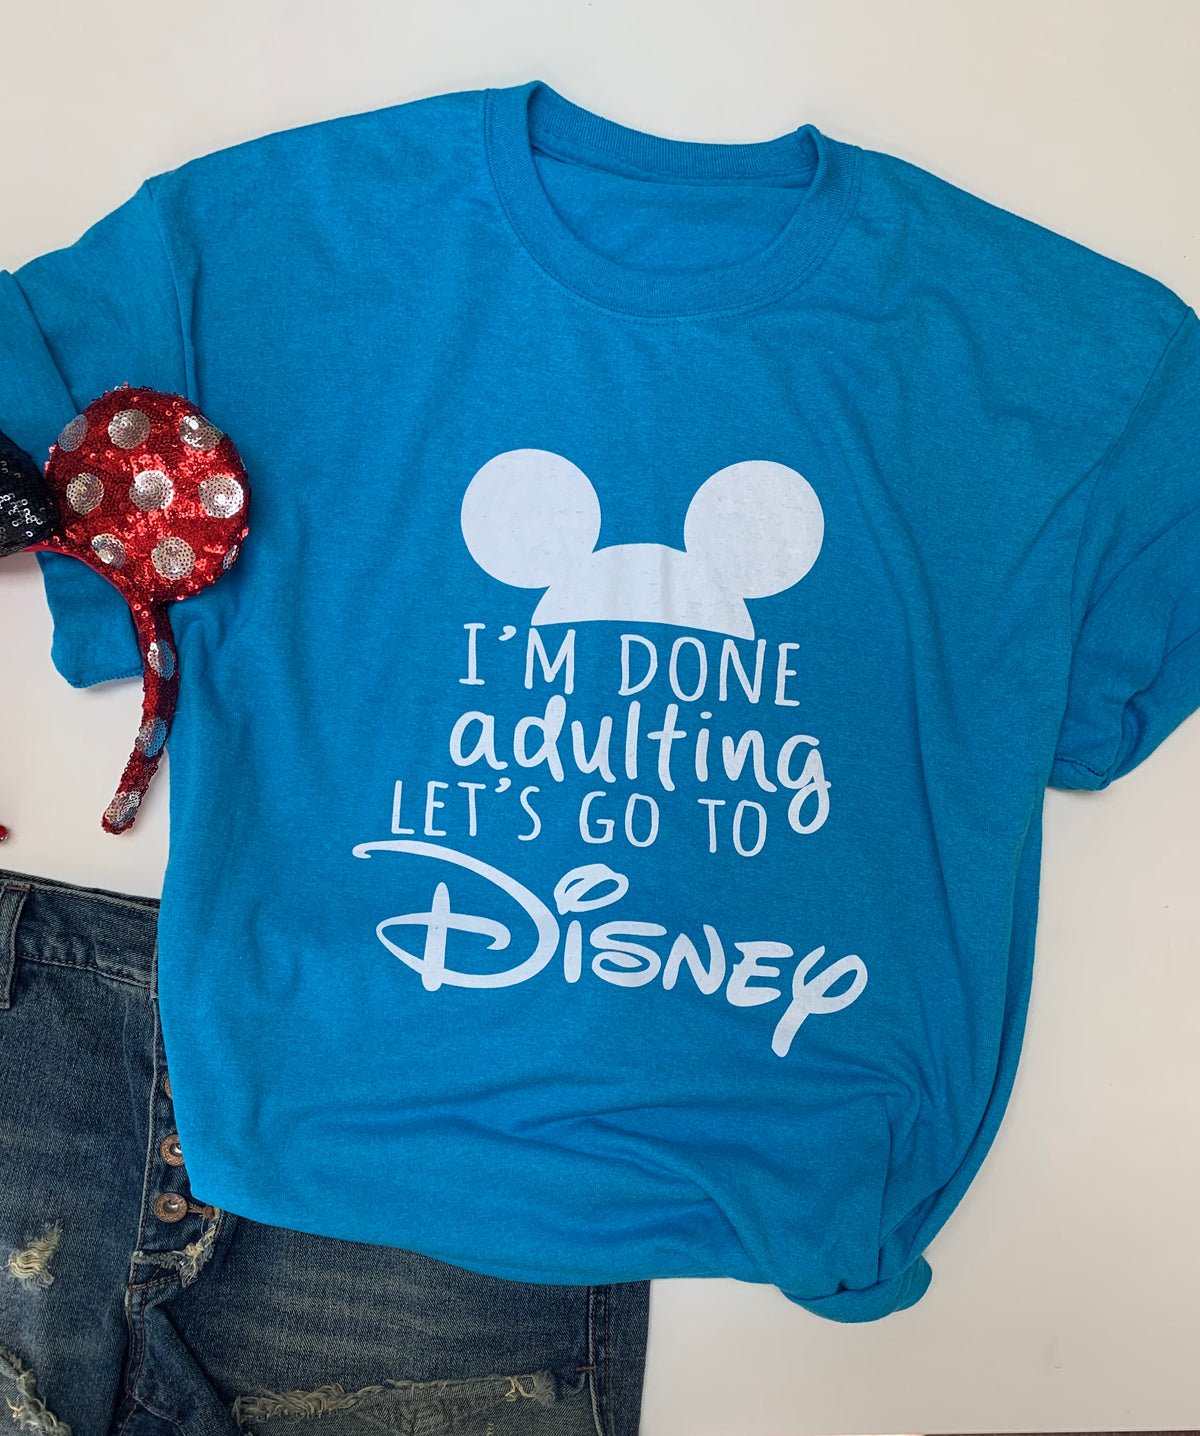 I'm Done Adulting Let's Go to Disney T Shirt Trip Tee